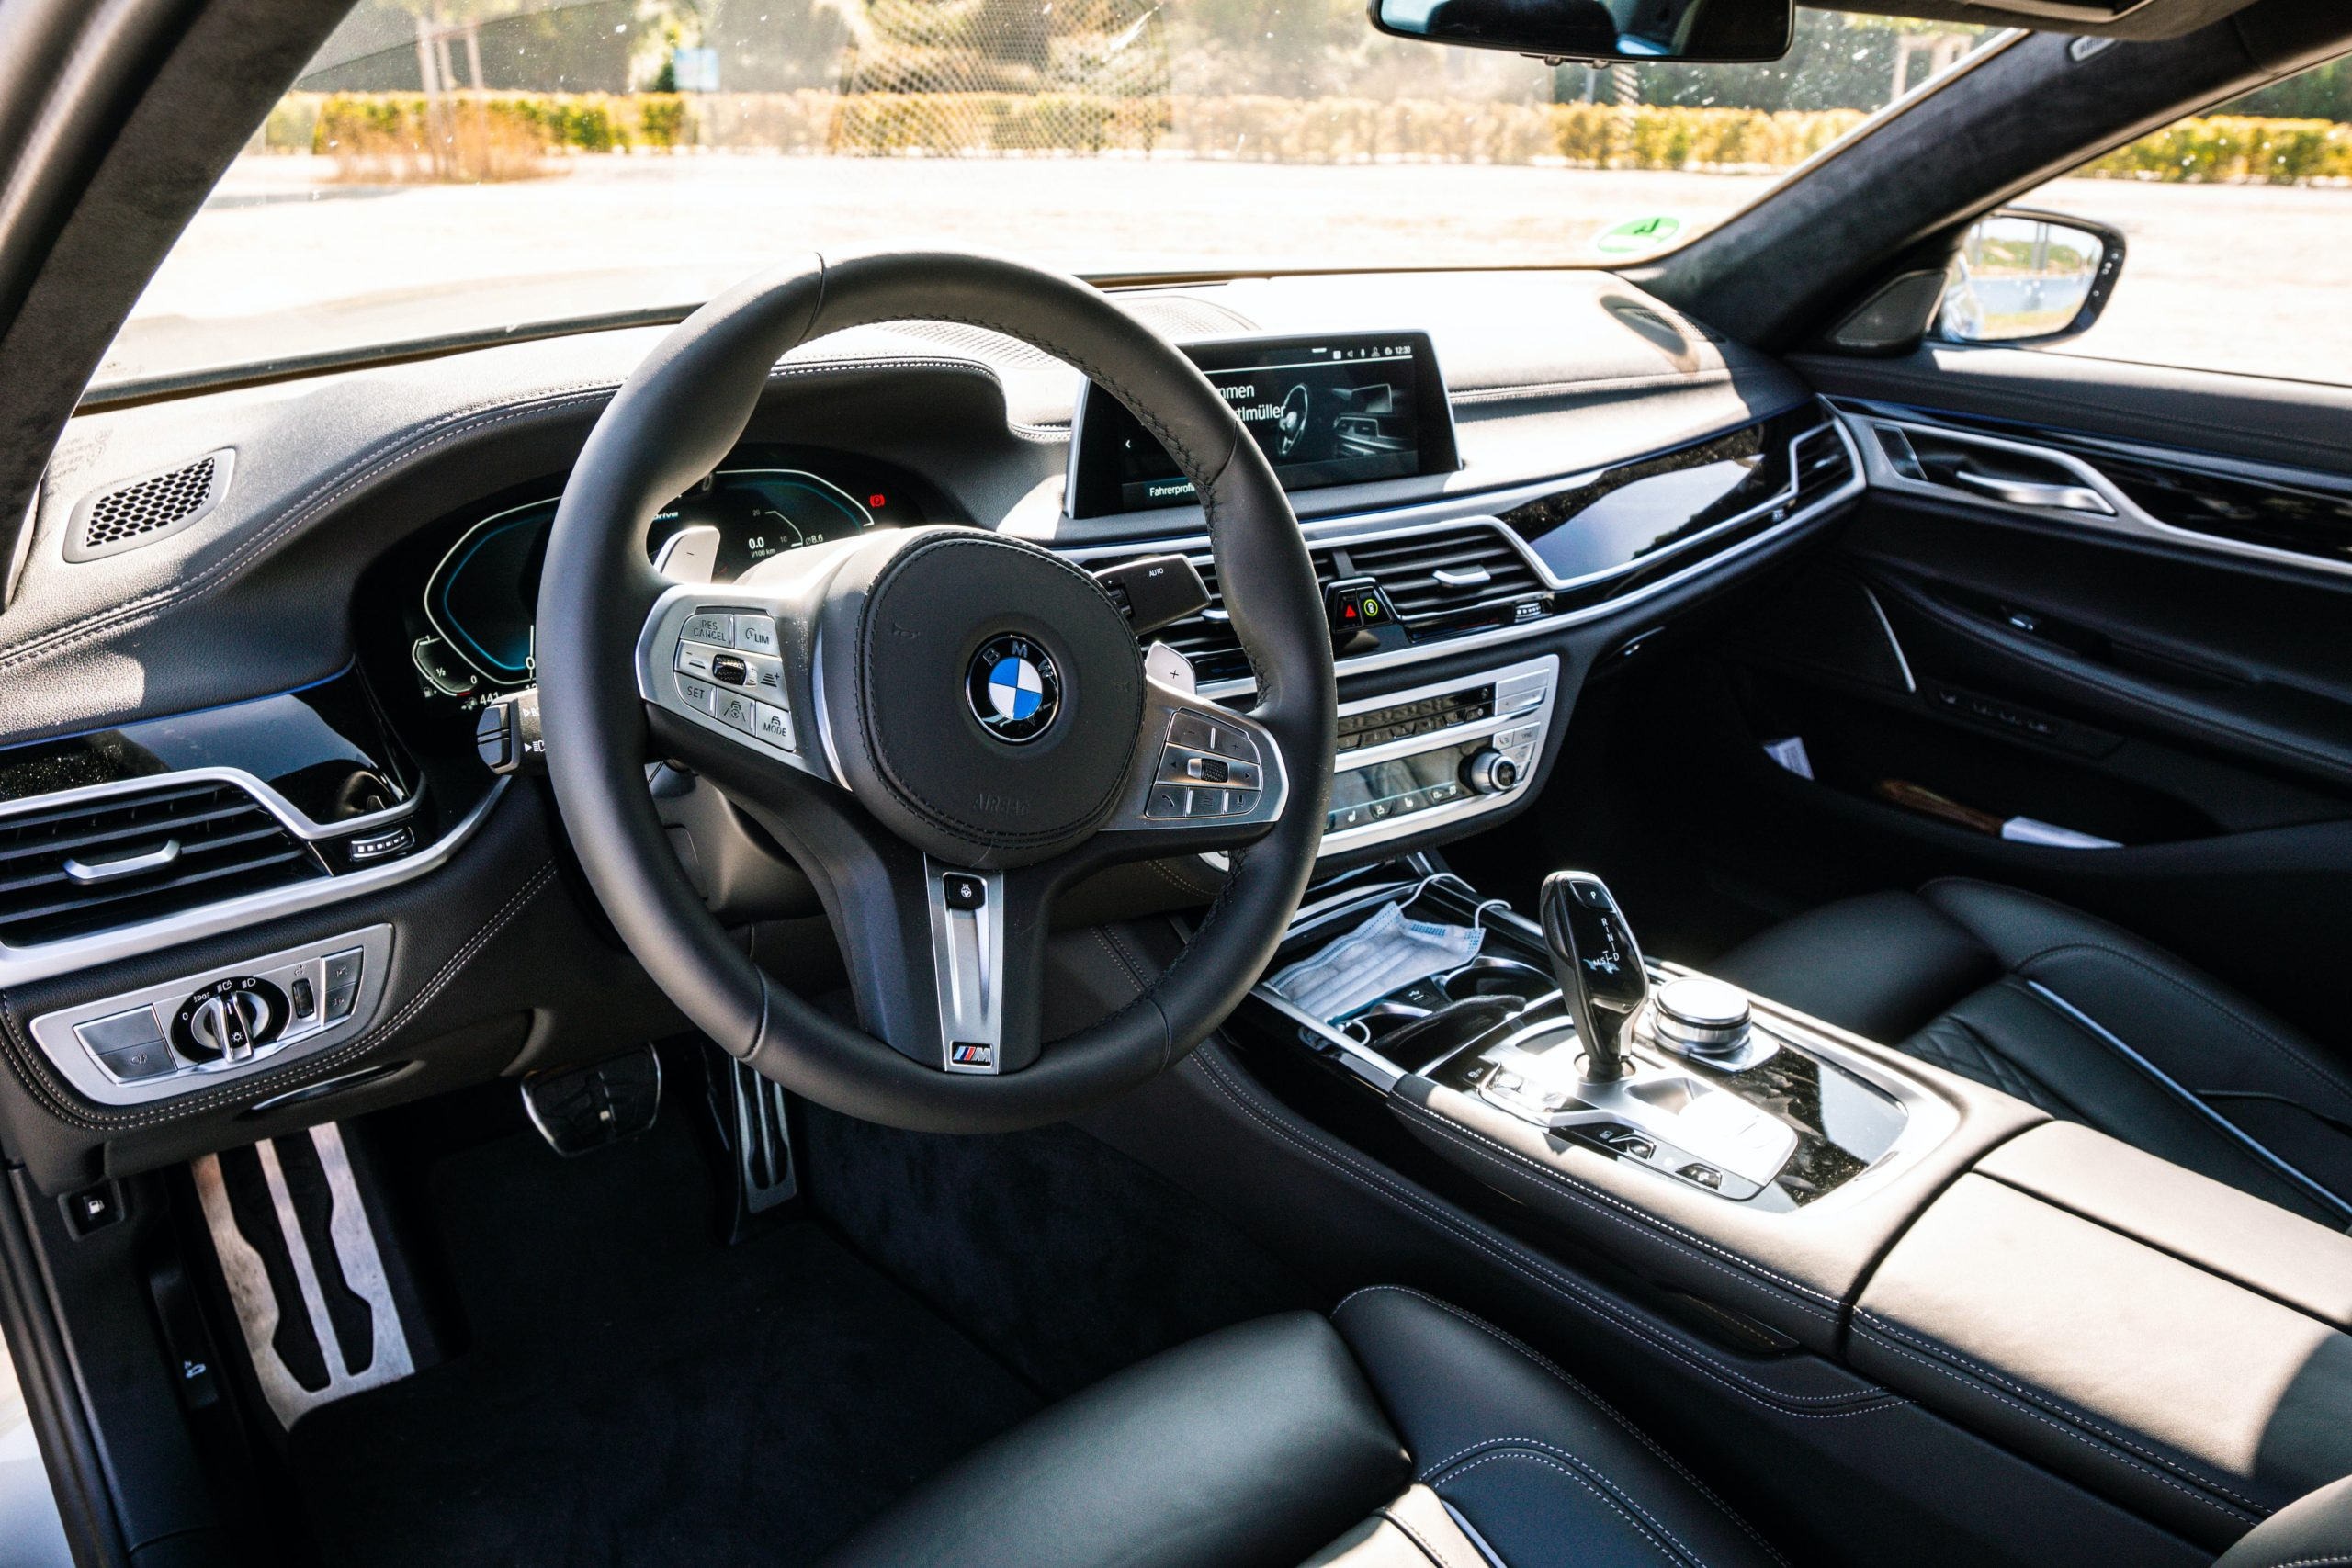 A BMWs driving wheel and dashboard